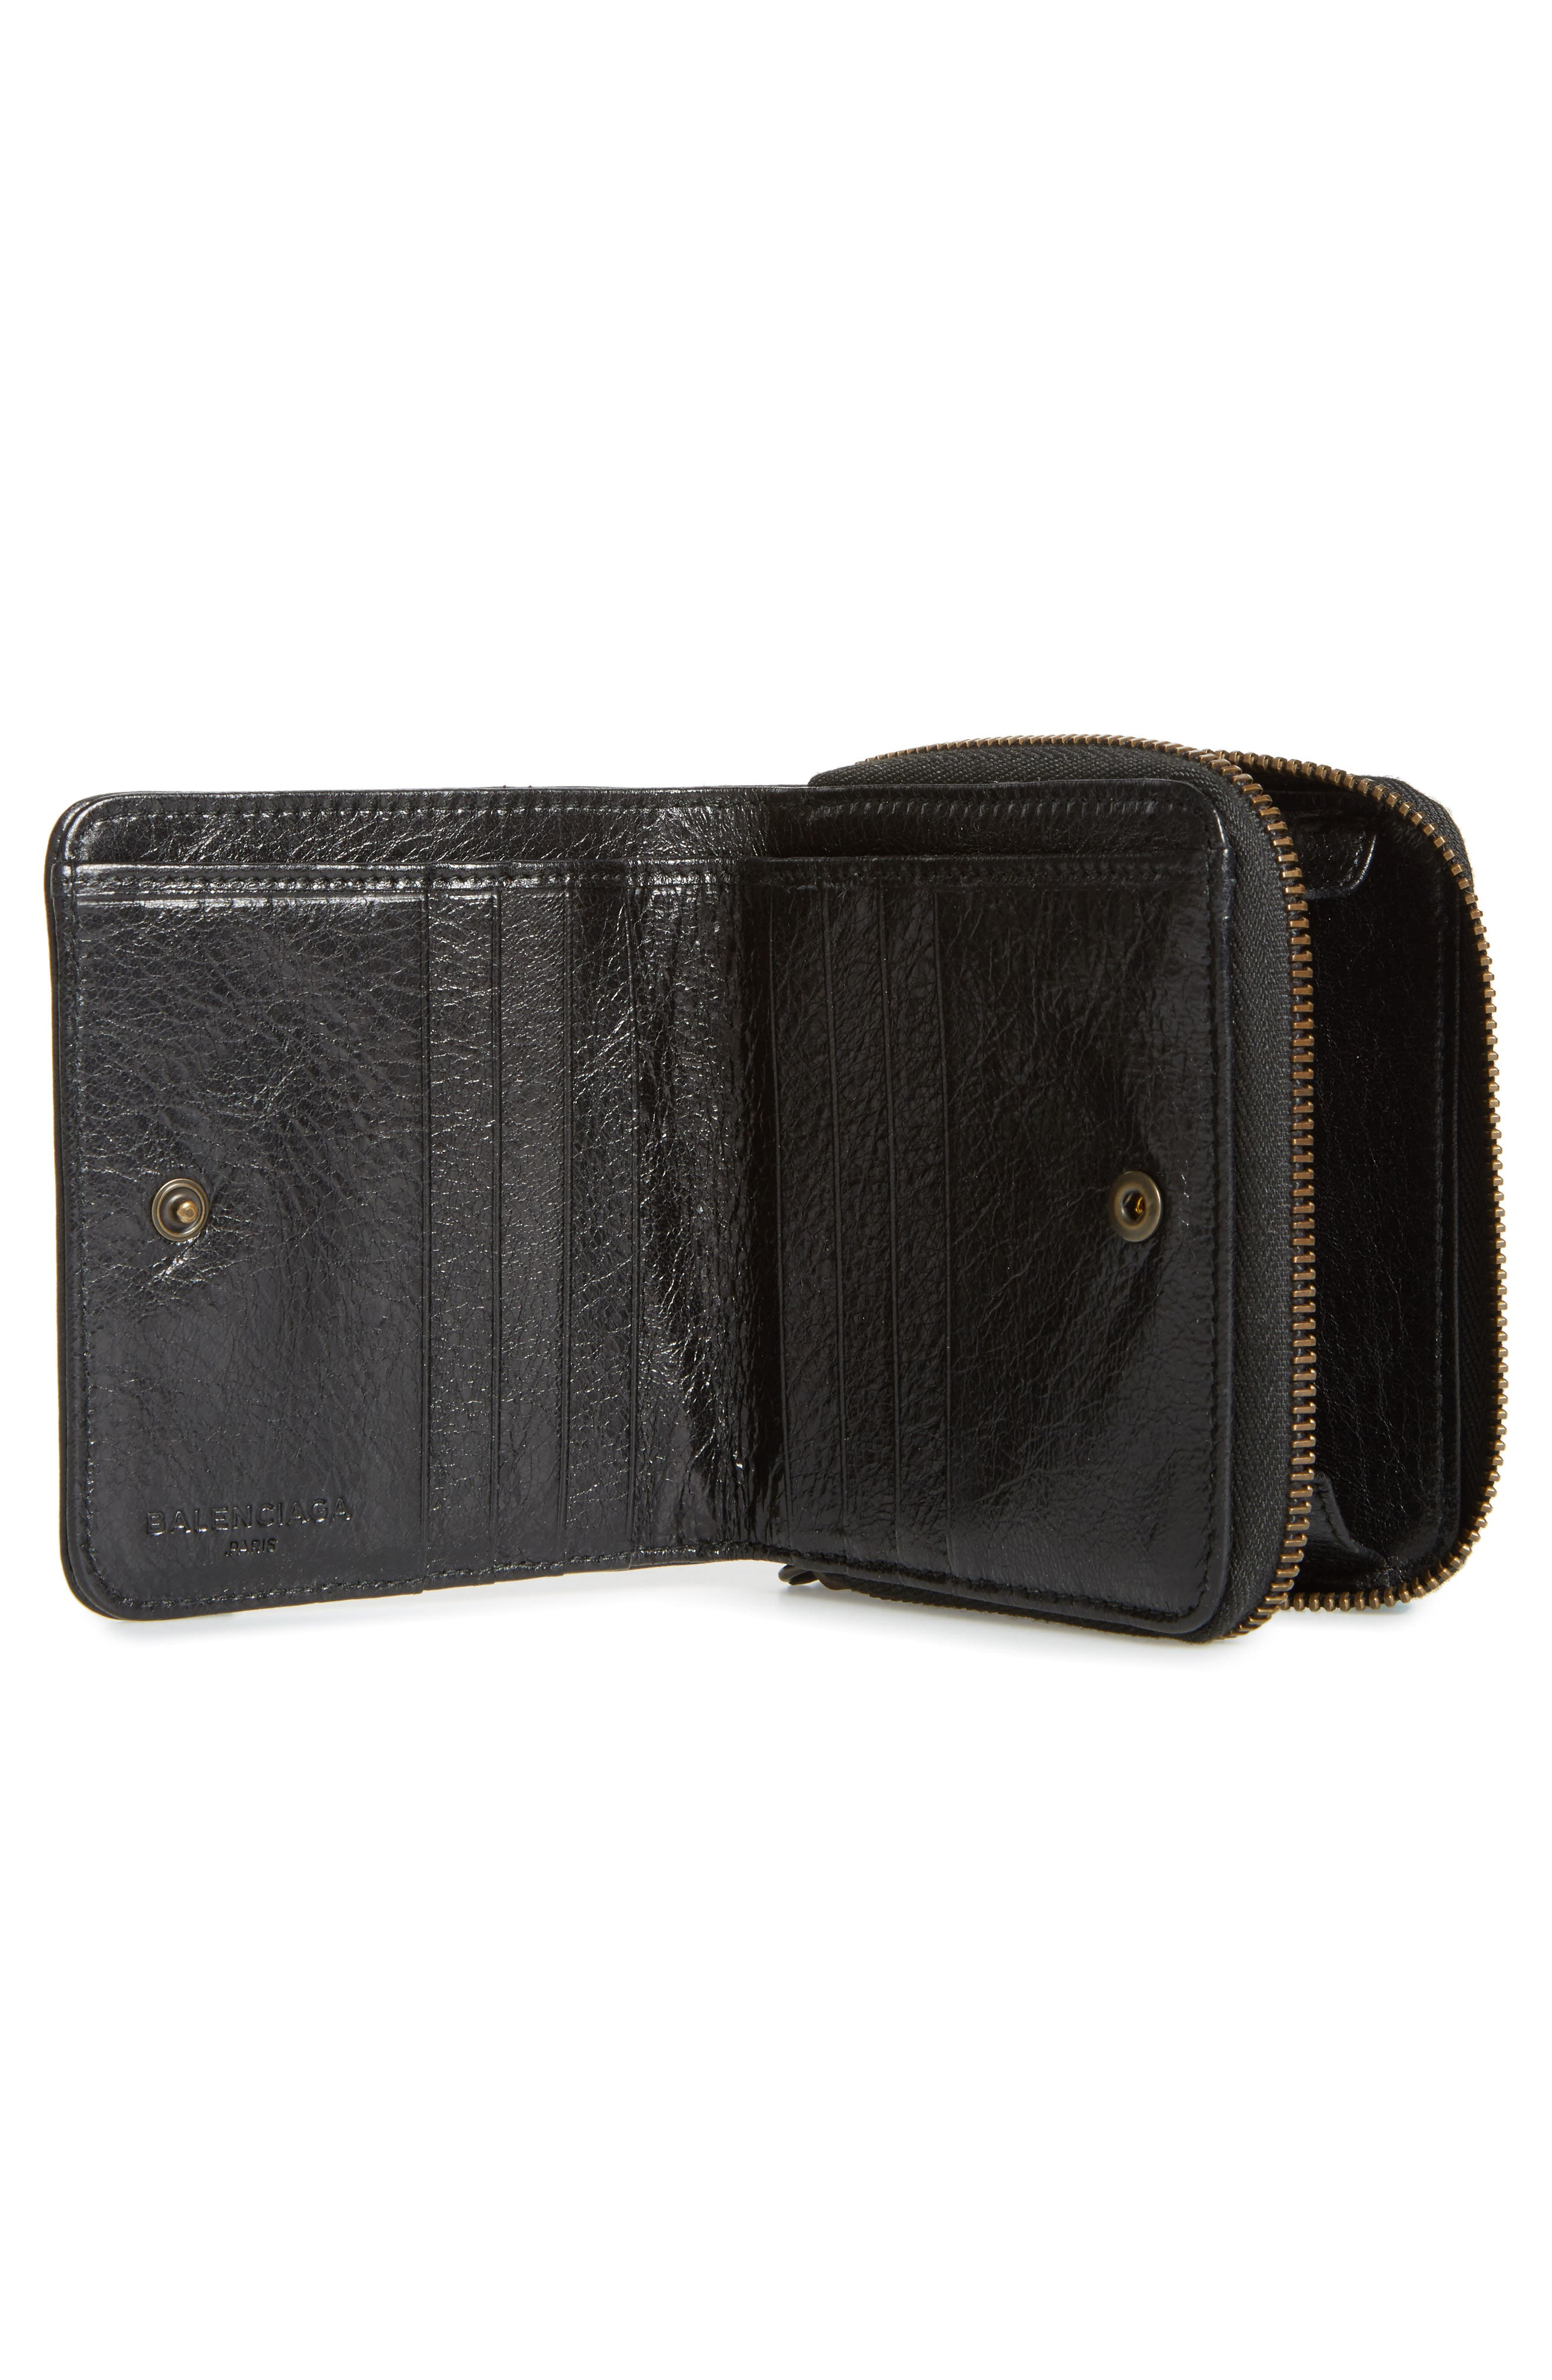 Classic Leather Bifold Wallet,                             Alternate thumbnail 2, color,                             001